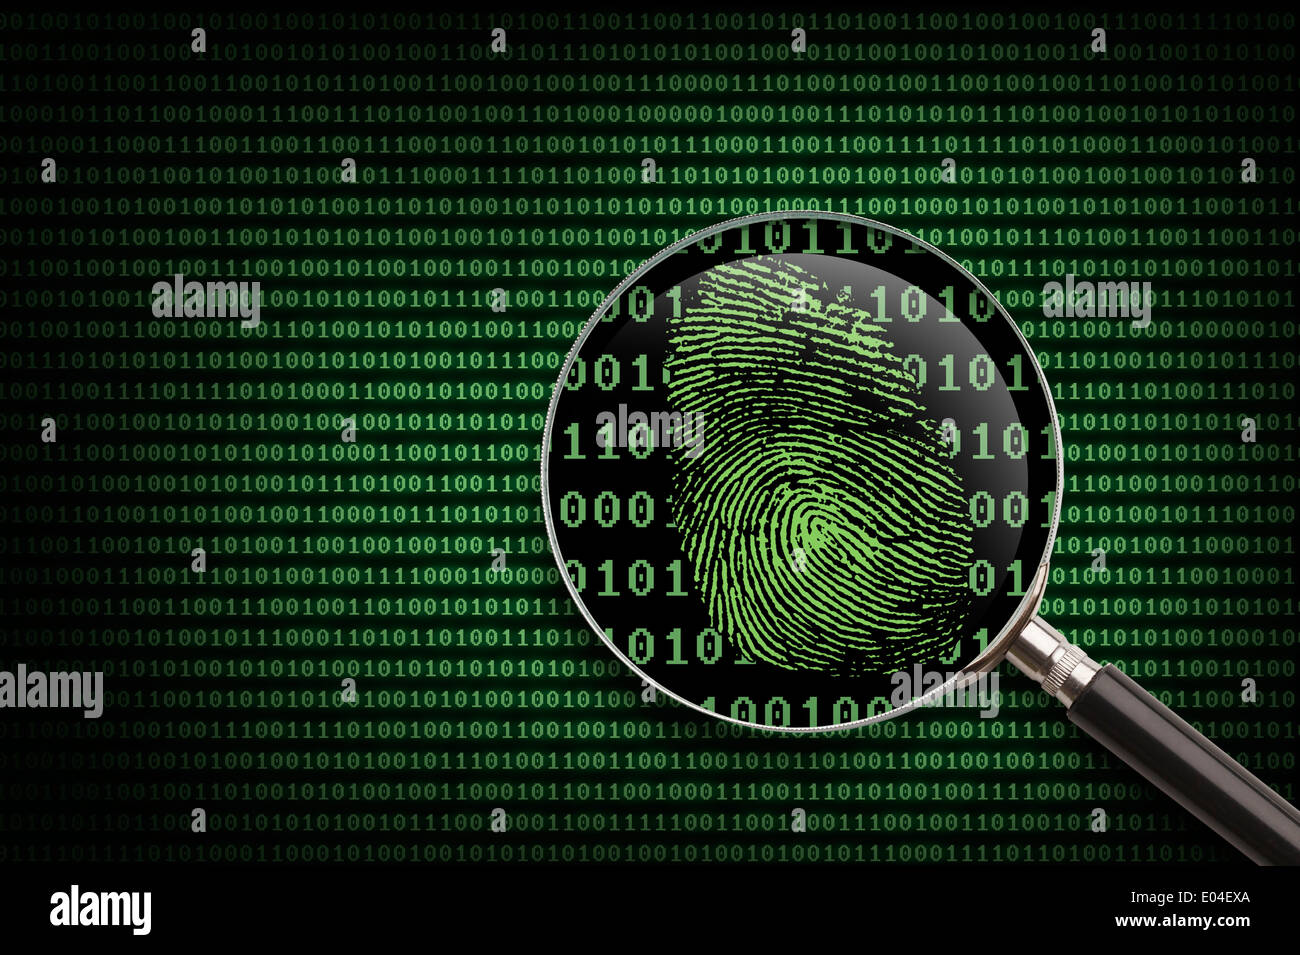 Magnifying Glass searching code for online activity. - Stock Image